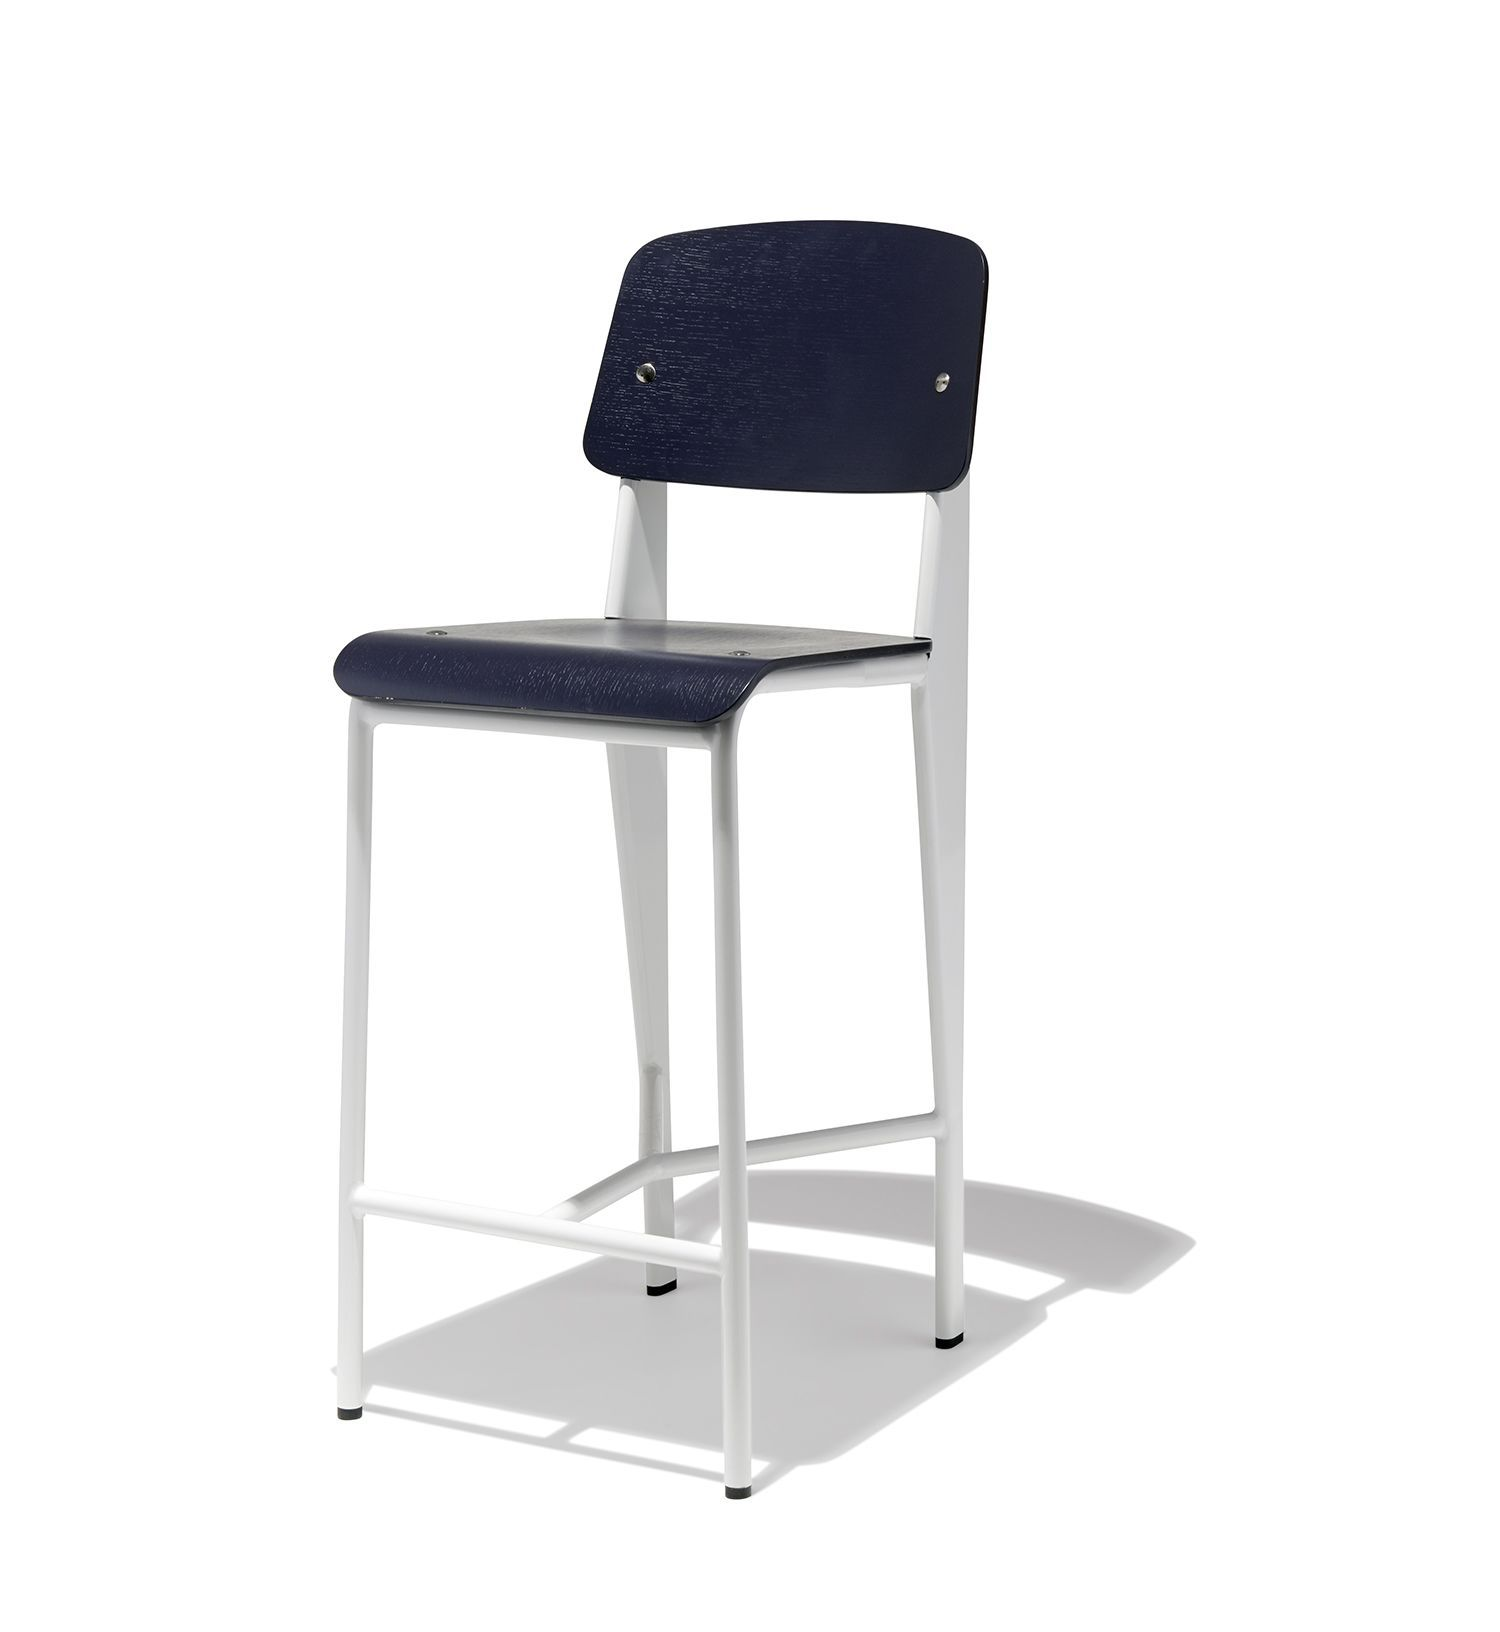 Strange Prouve Counter Stool In 2019 Counter Stools Stool Counter Machost Co Dining Chair Design Ideas Machostcouk